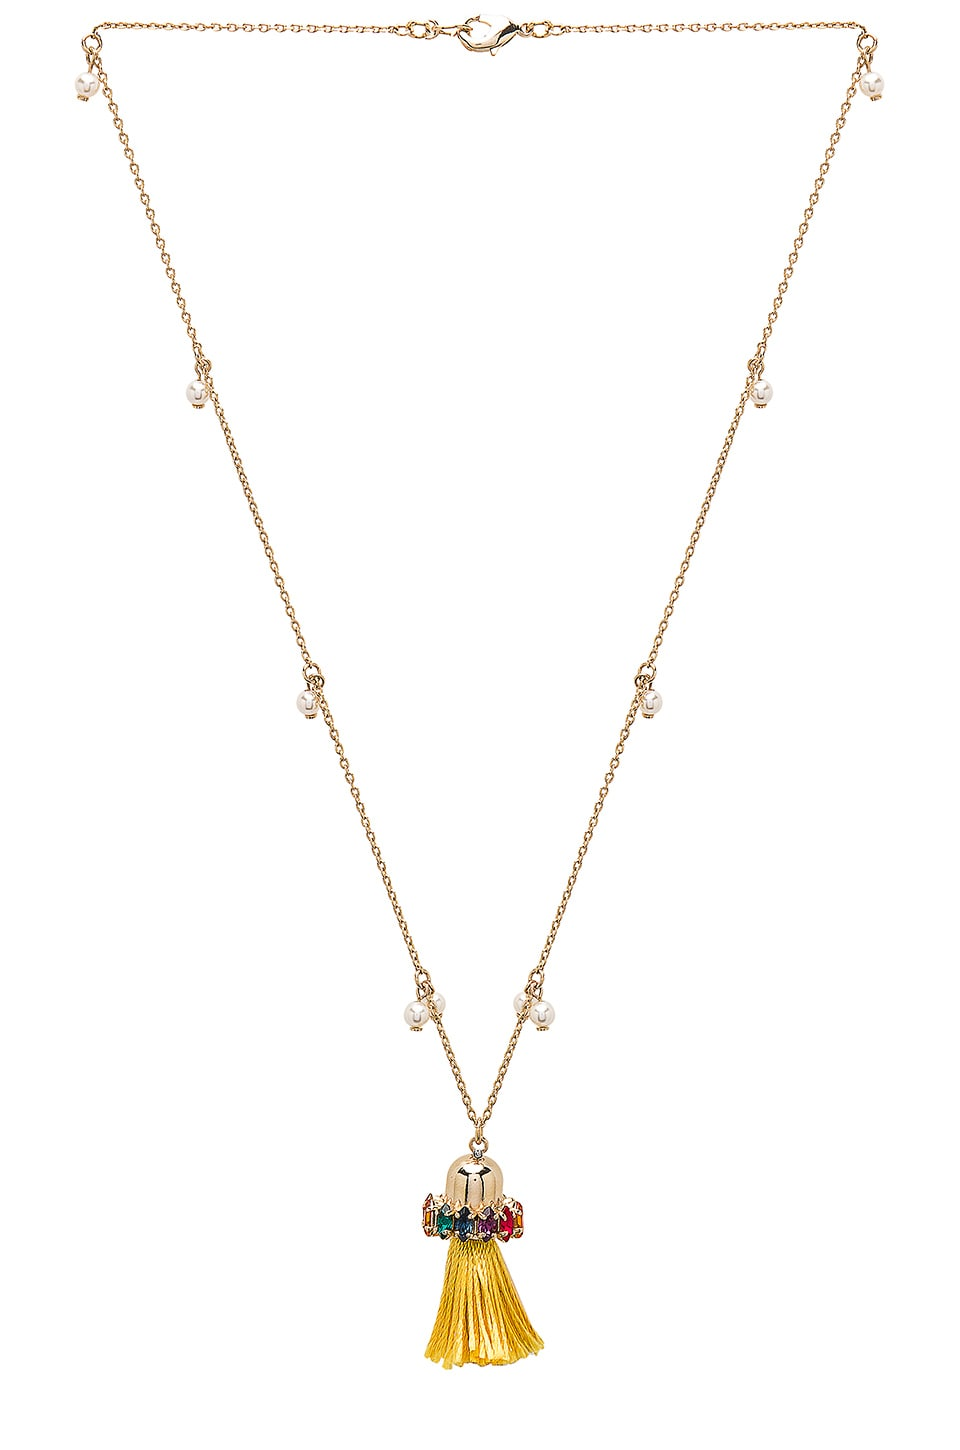 Tassel Pendant Necklace by Anton Heunis